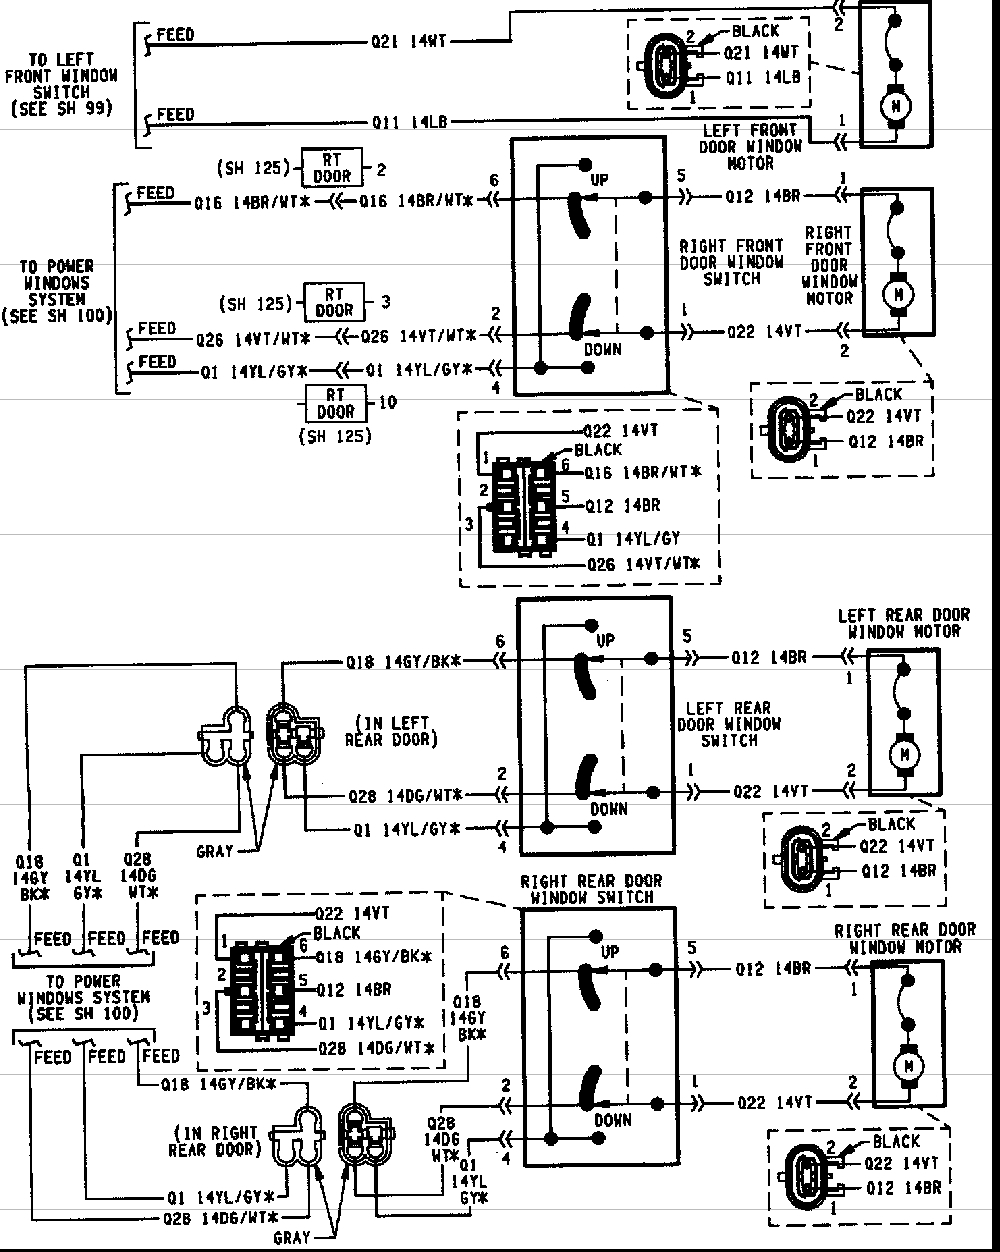 Jeep Grand Cherokee Wiring Diagram | Free Wiring Diagram